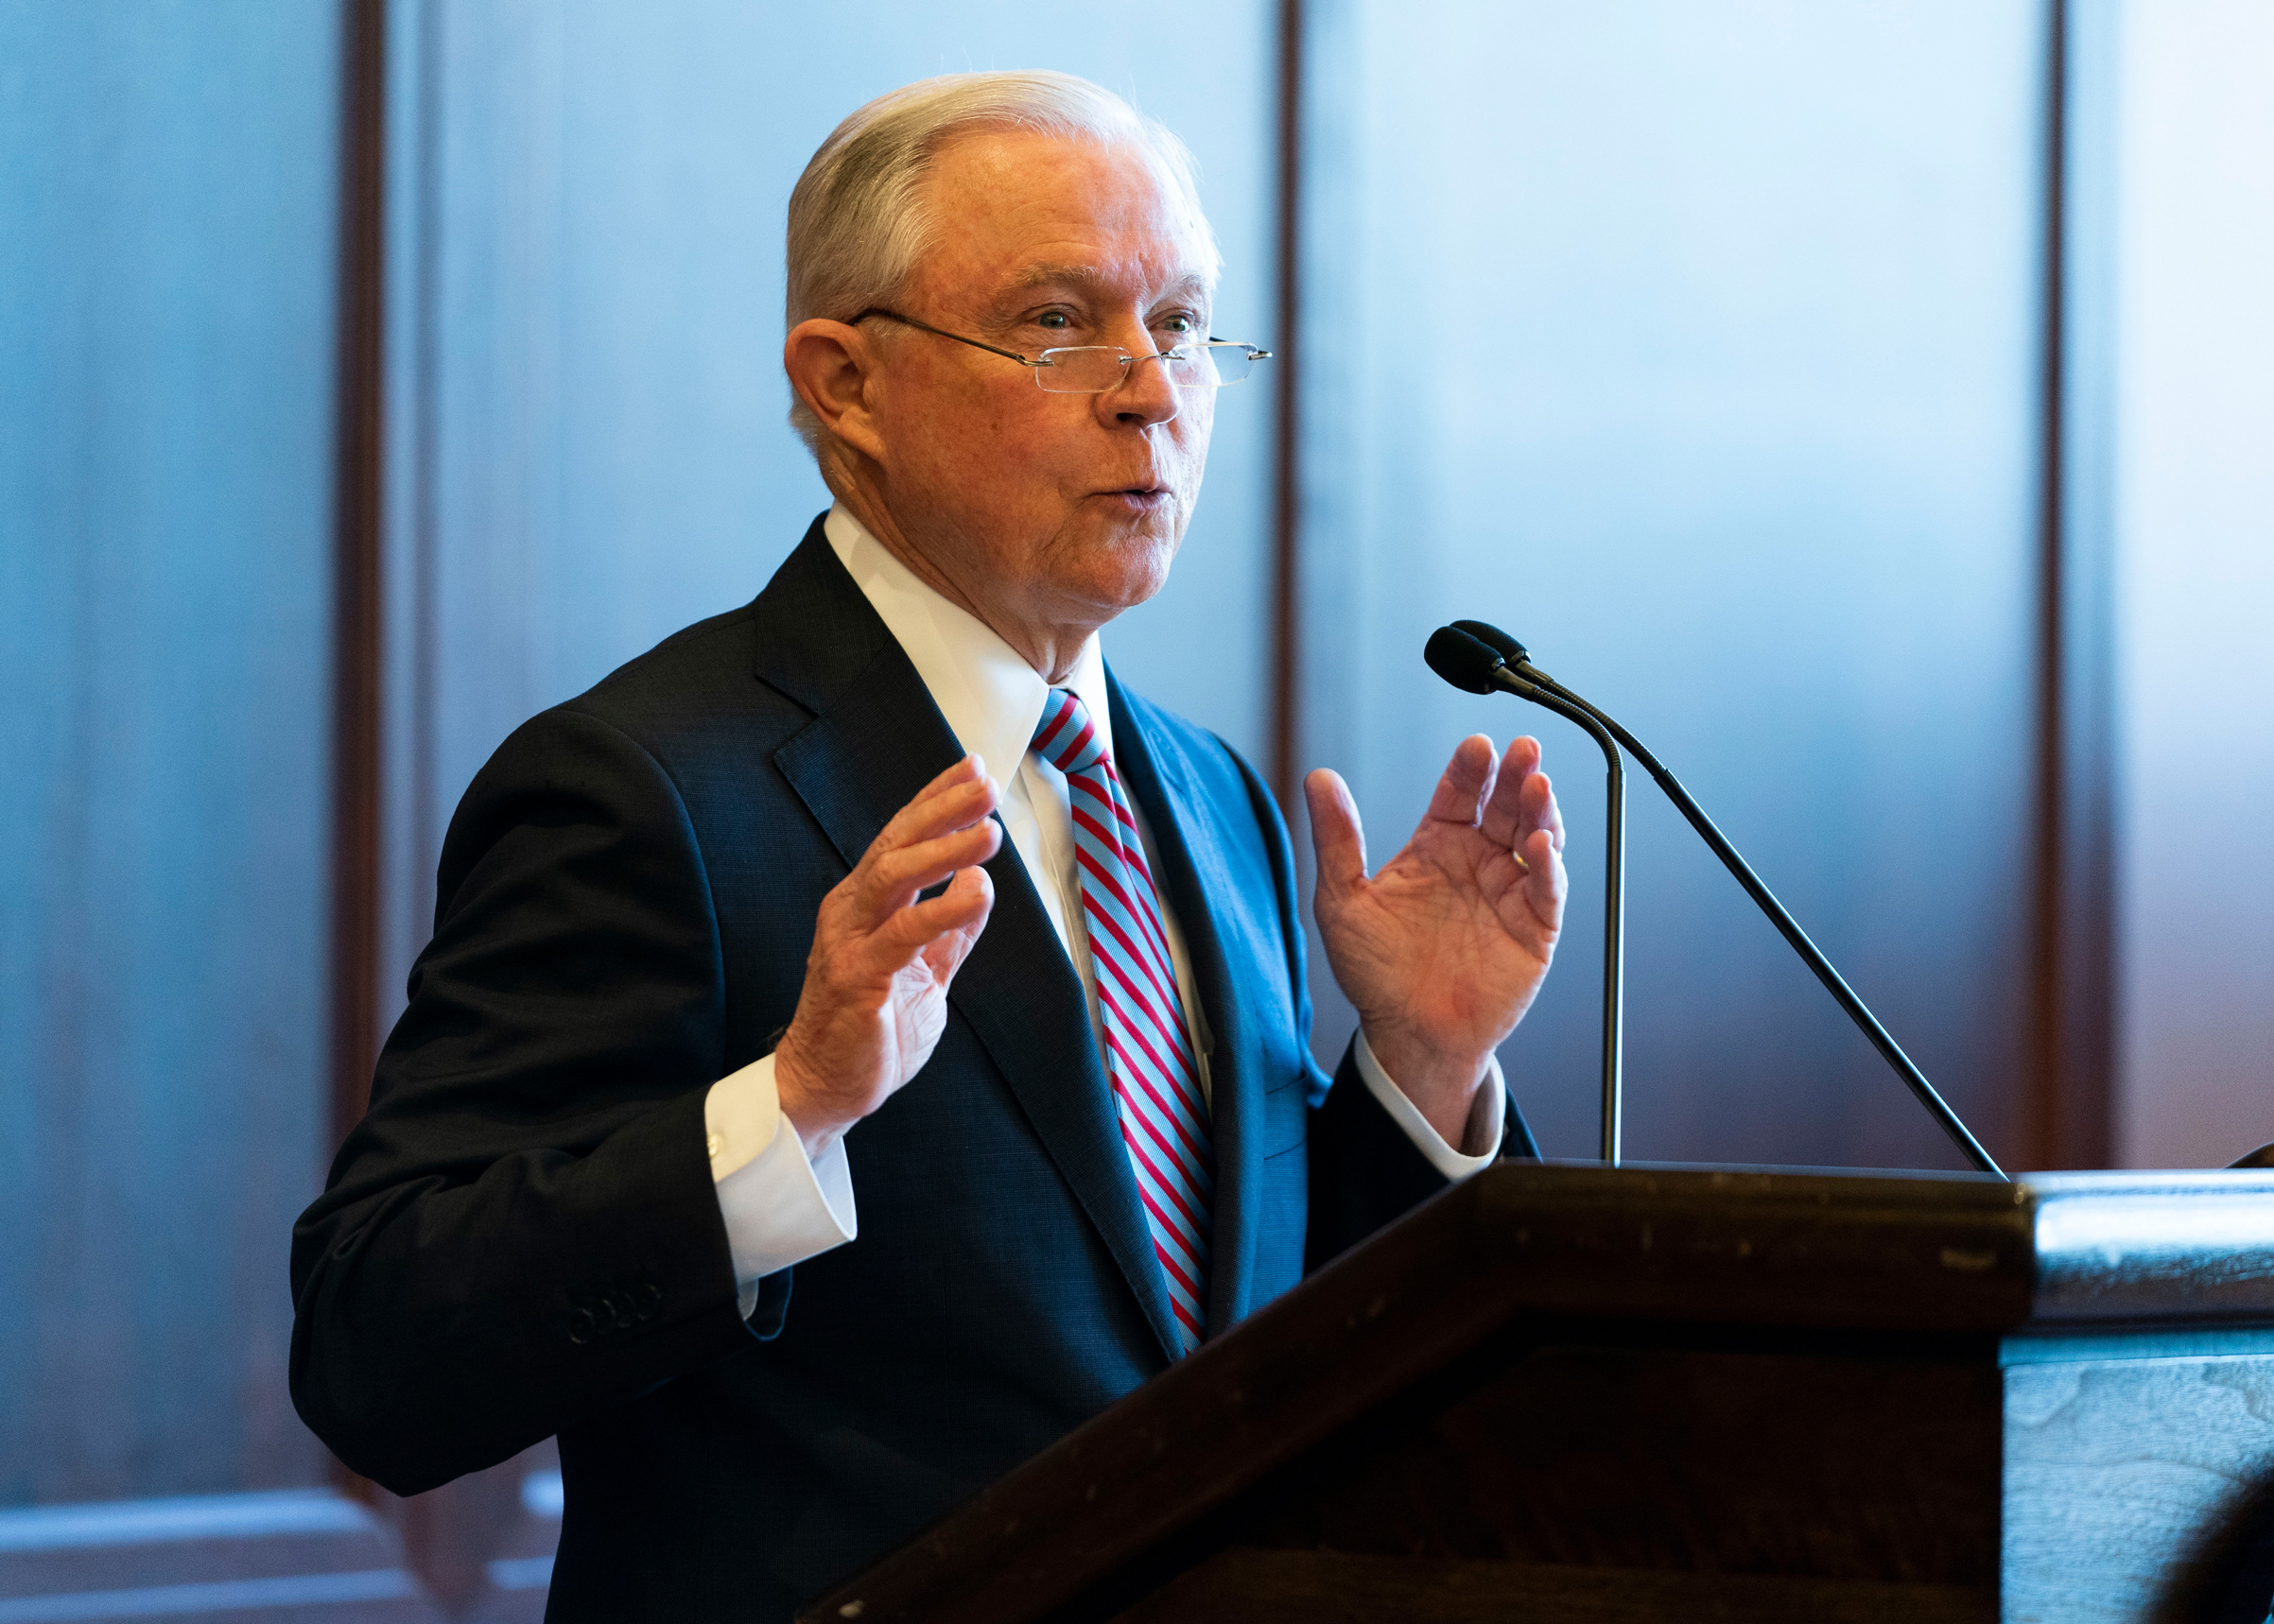 U.S. Attorney General Jeff Sessions delivers remarks on immigration and law enforcement actions on June 15, 2018 in Scranton, Penn.